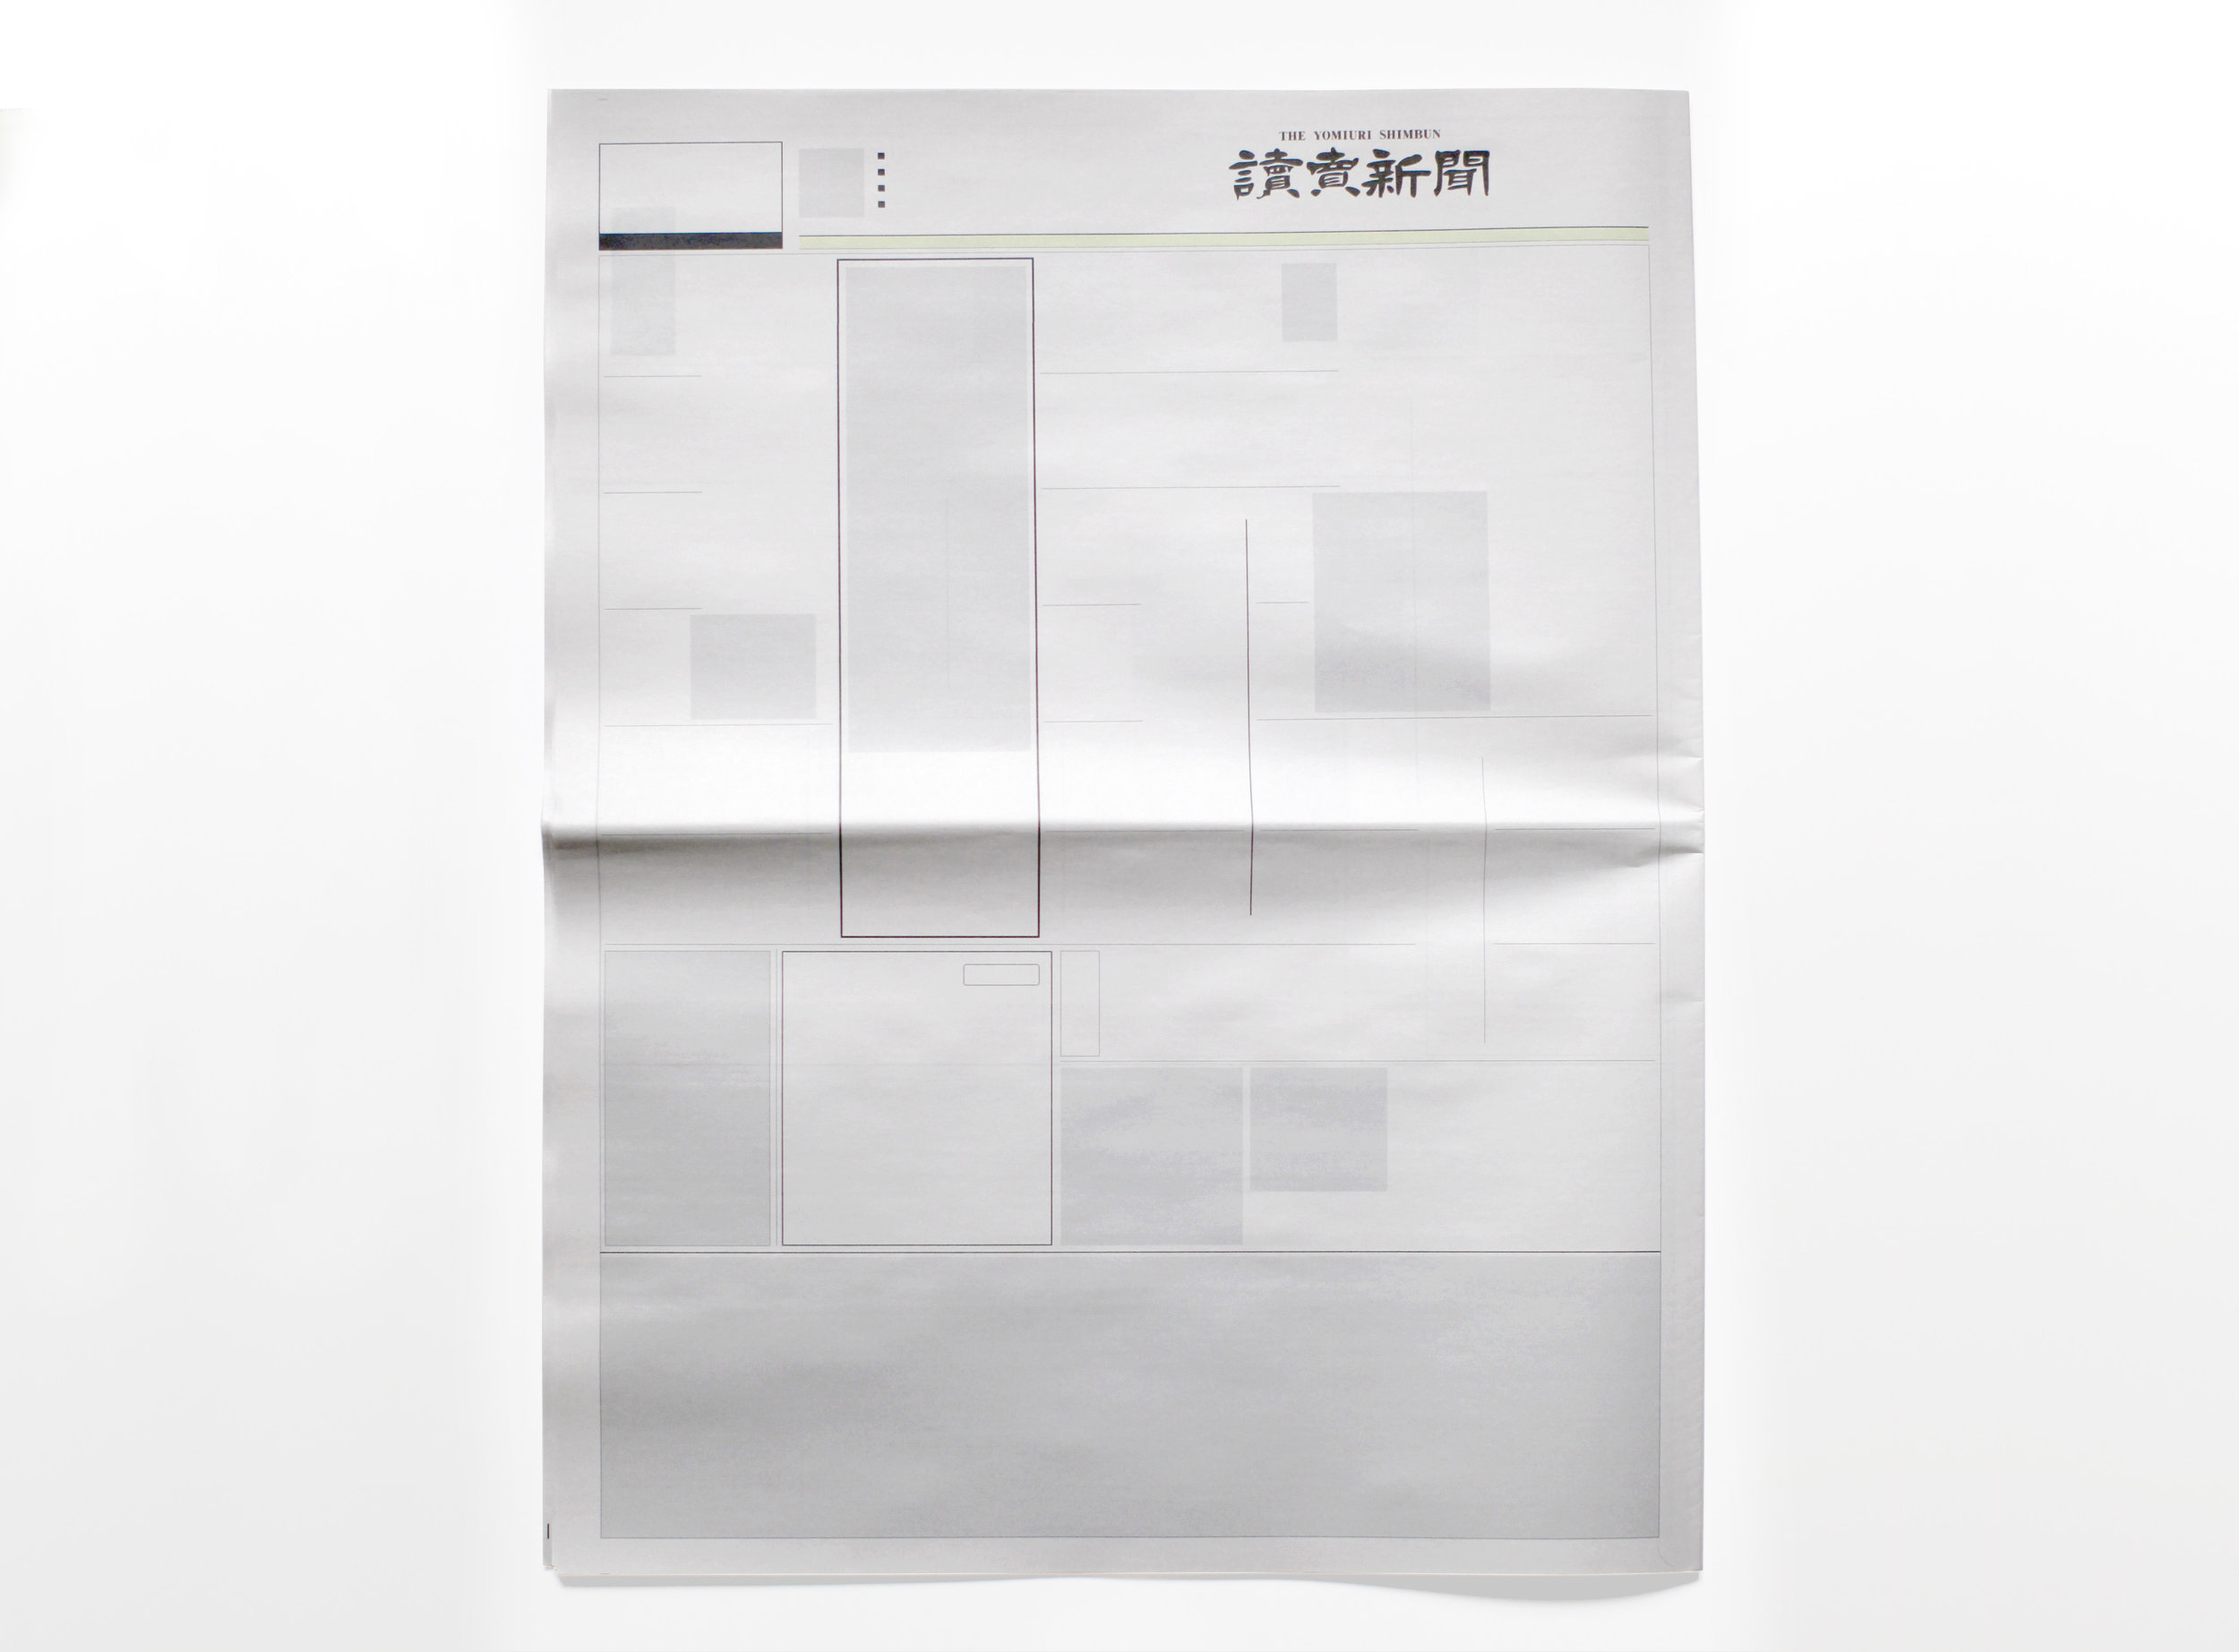 NOTHING IN THE YOMIURI SHIMBUN  - Newspapers from round the world with nothing in them.